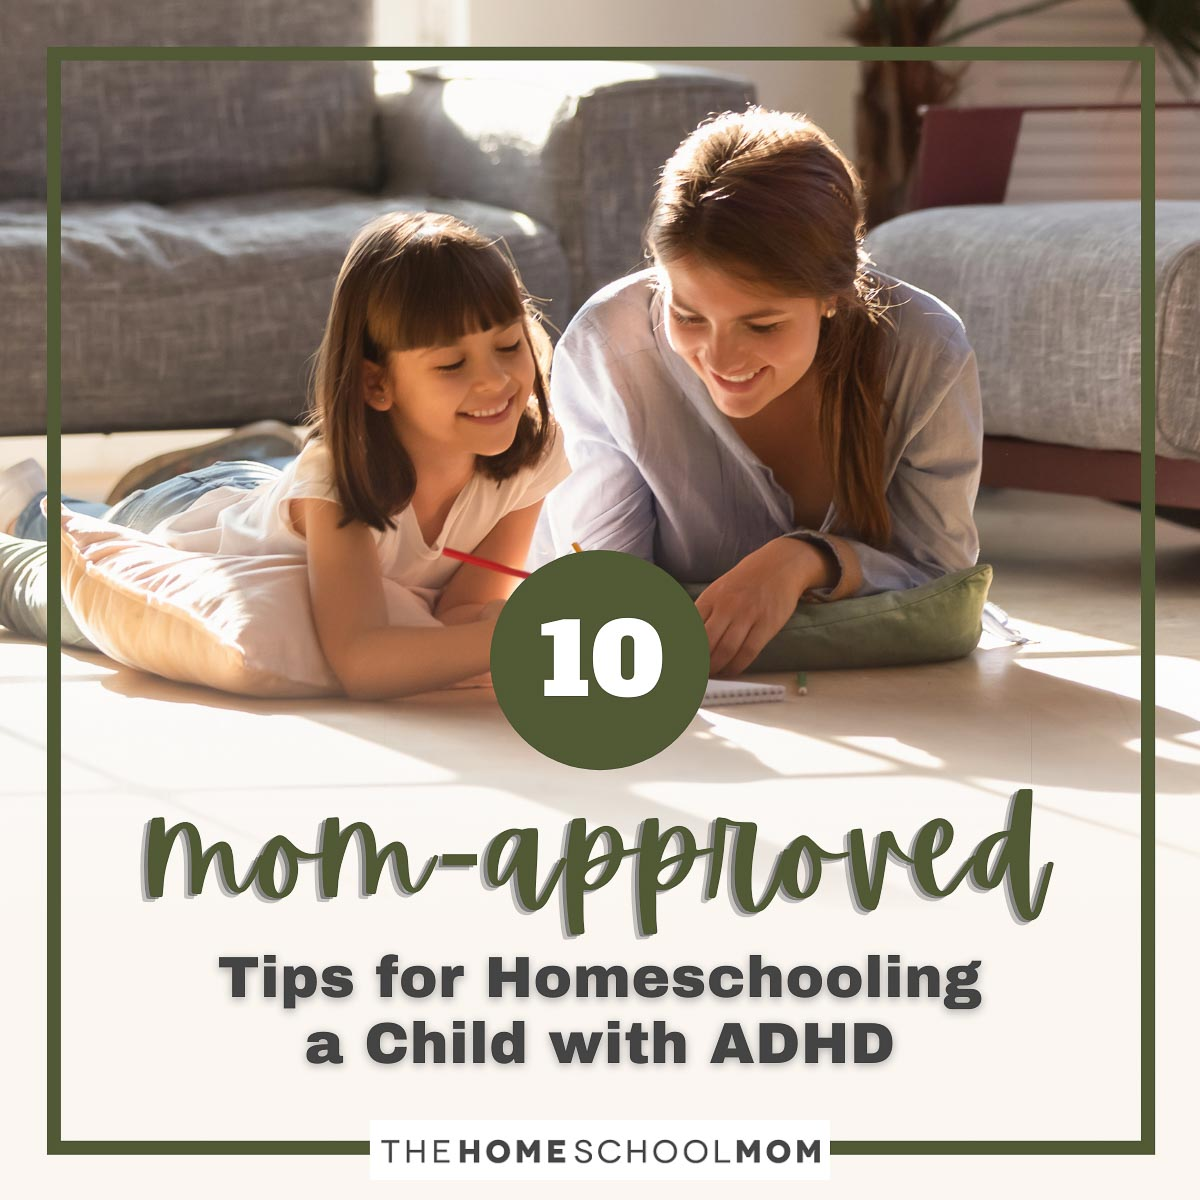 10 Mom-approved tips for homeschooling a child with ADHD